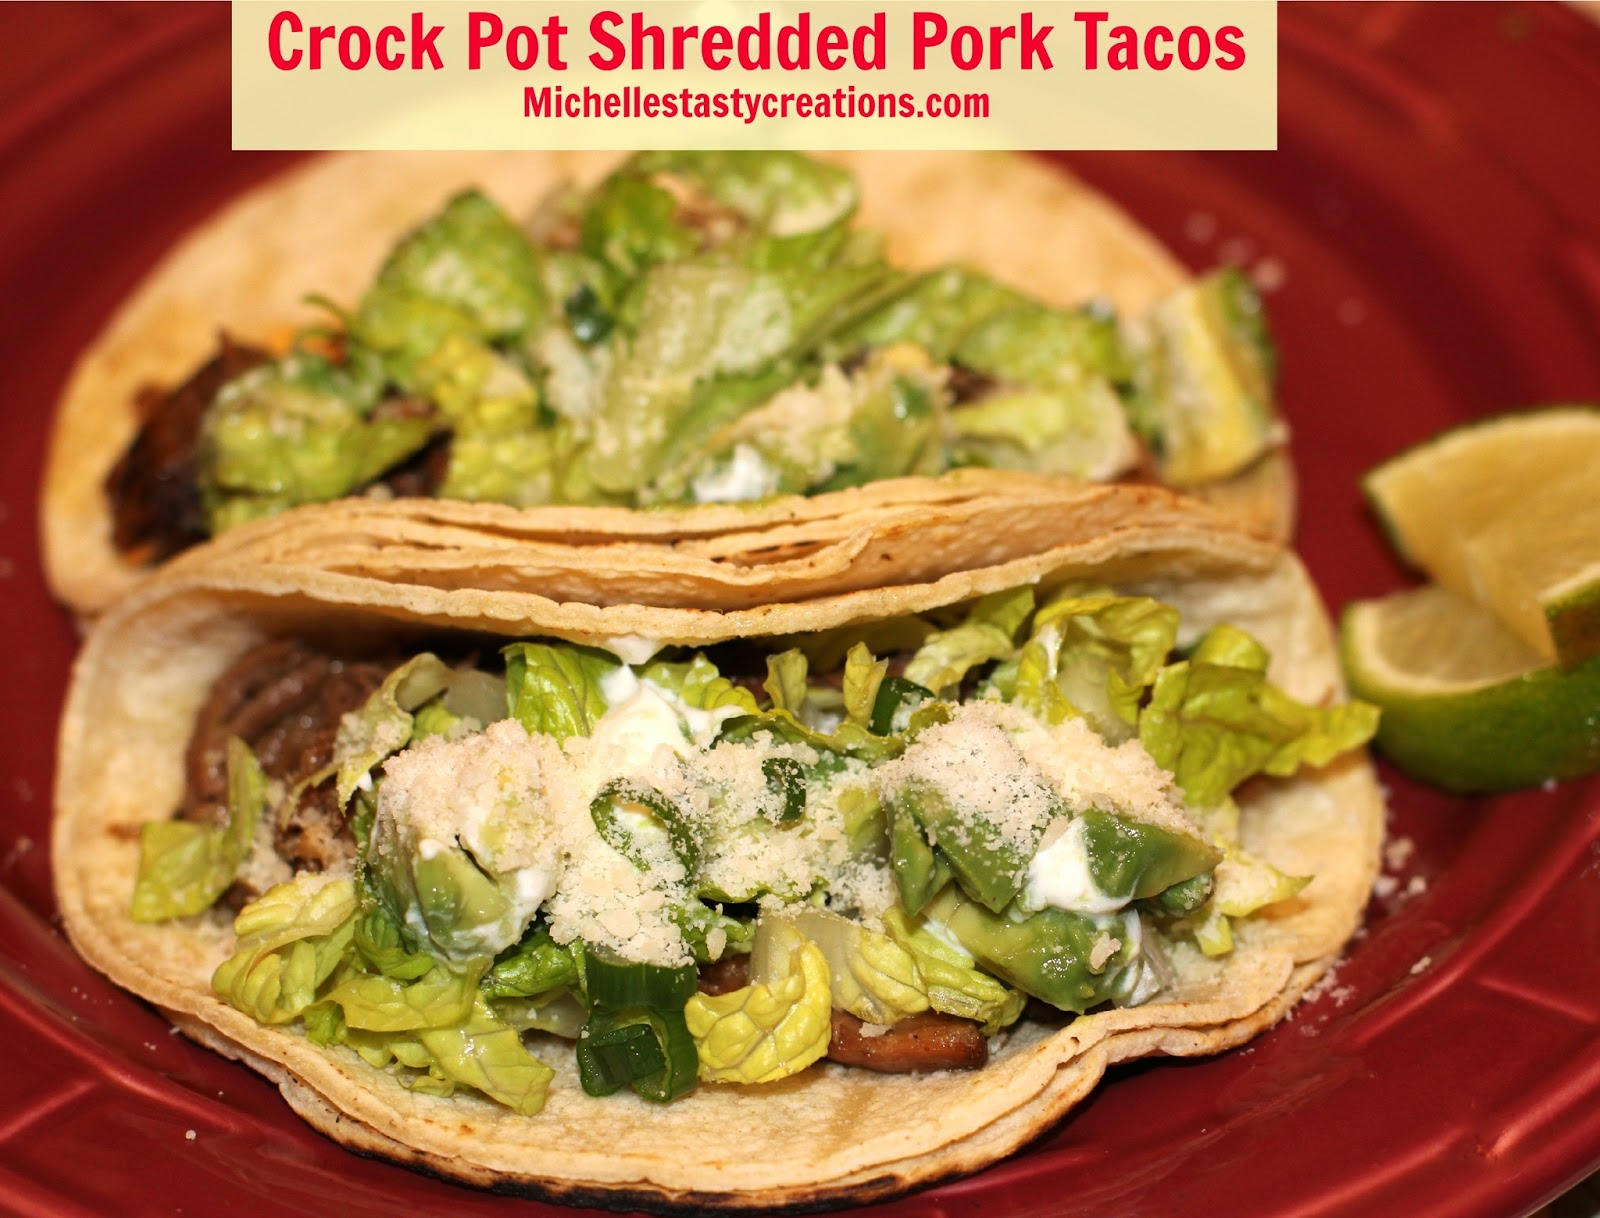 Michelle's Tasty Creations: Michelle's Shredded Pork Tacos